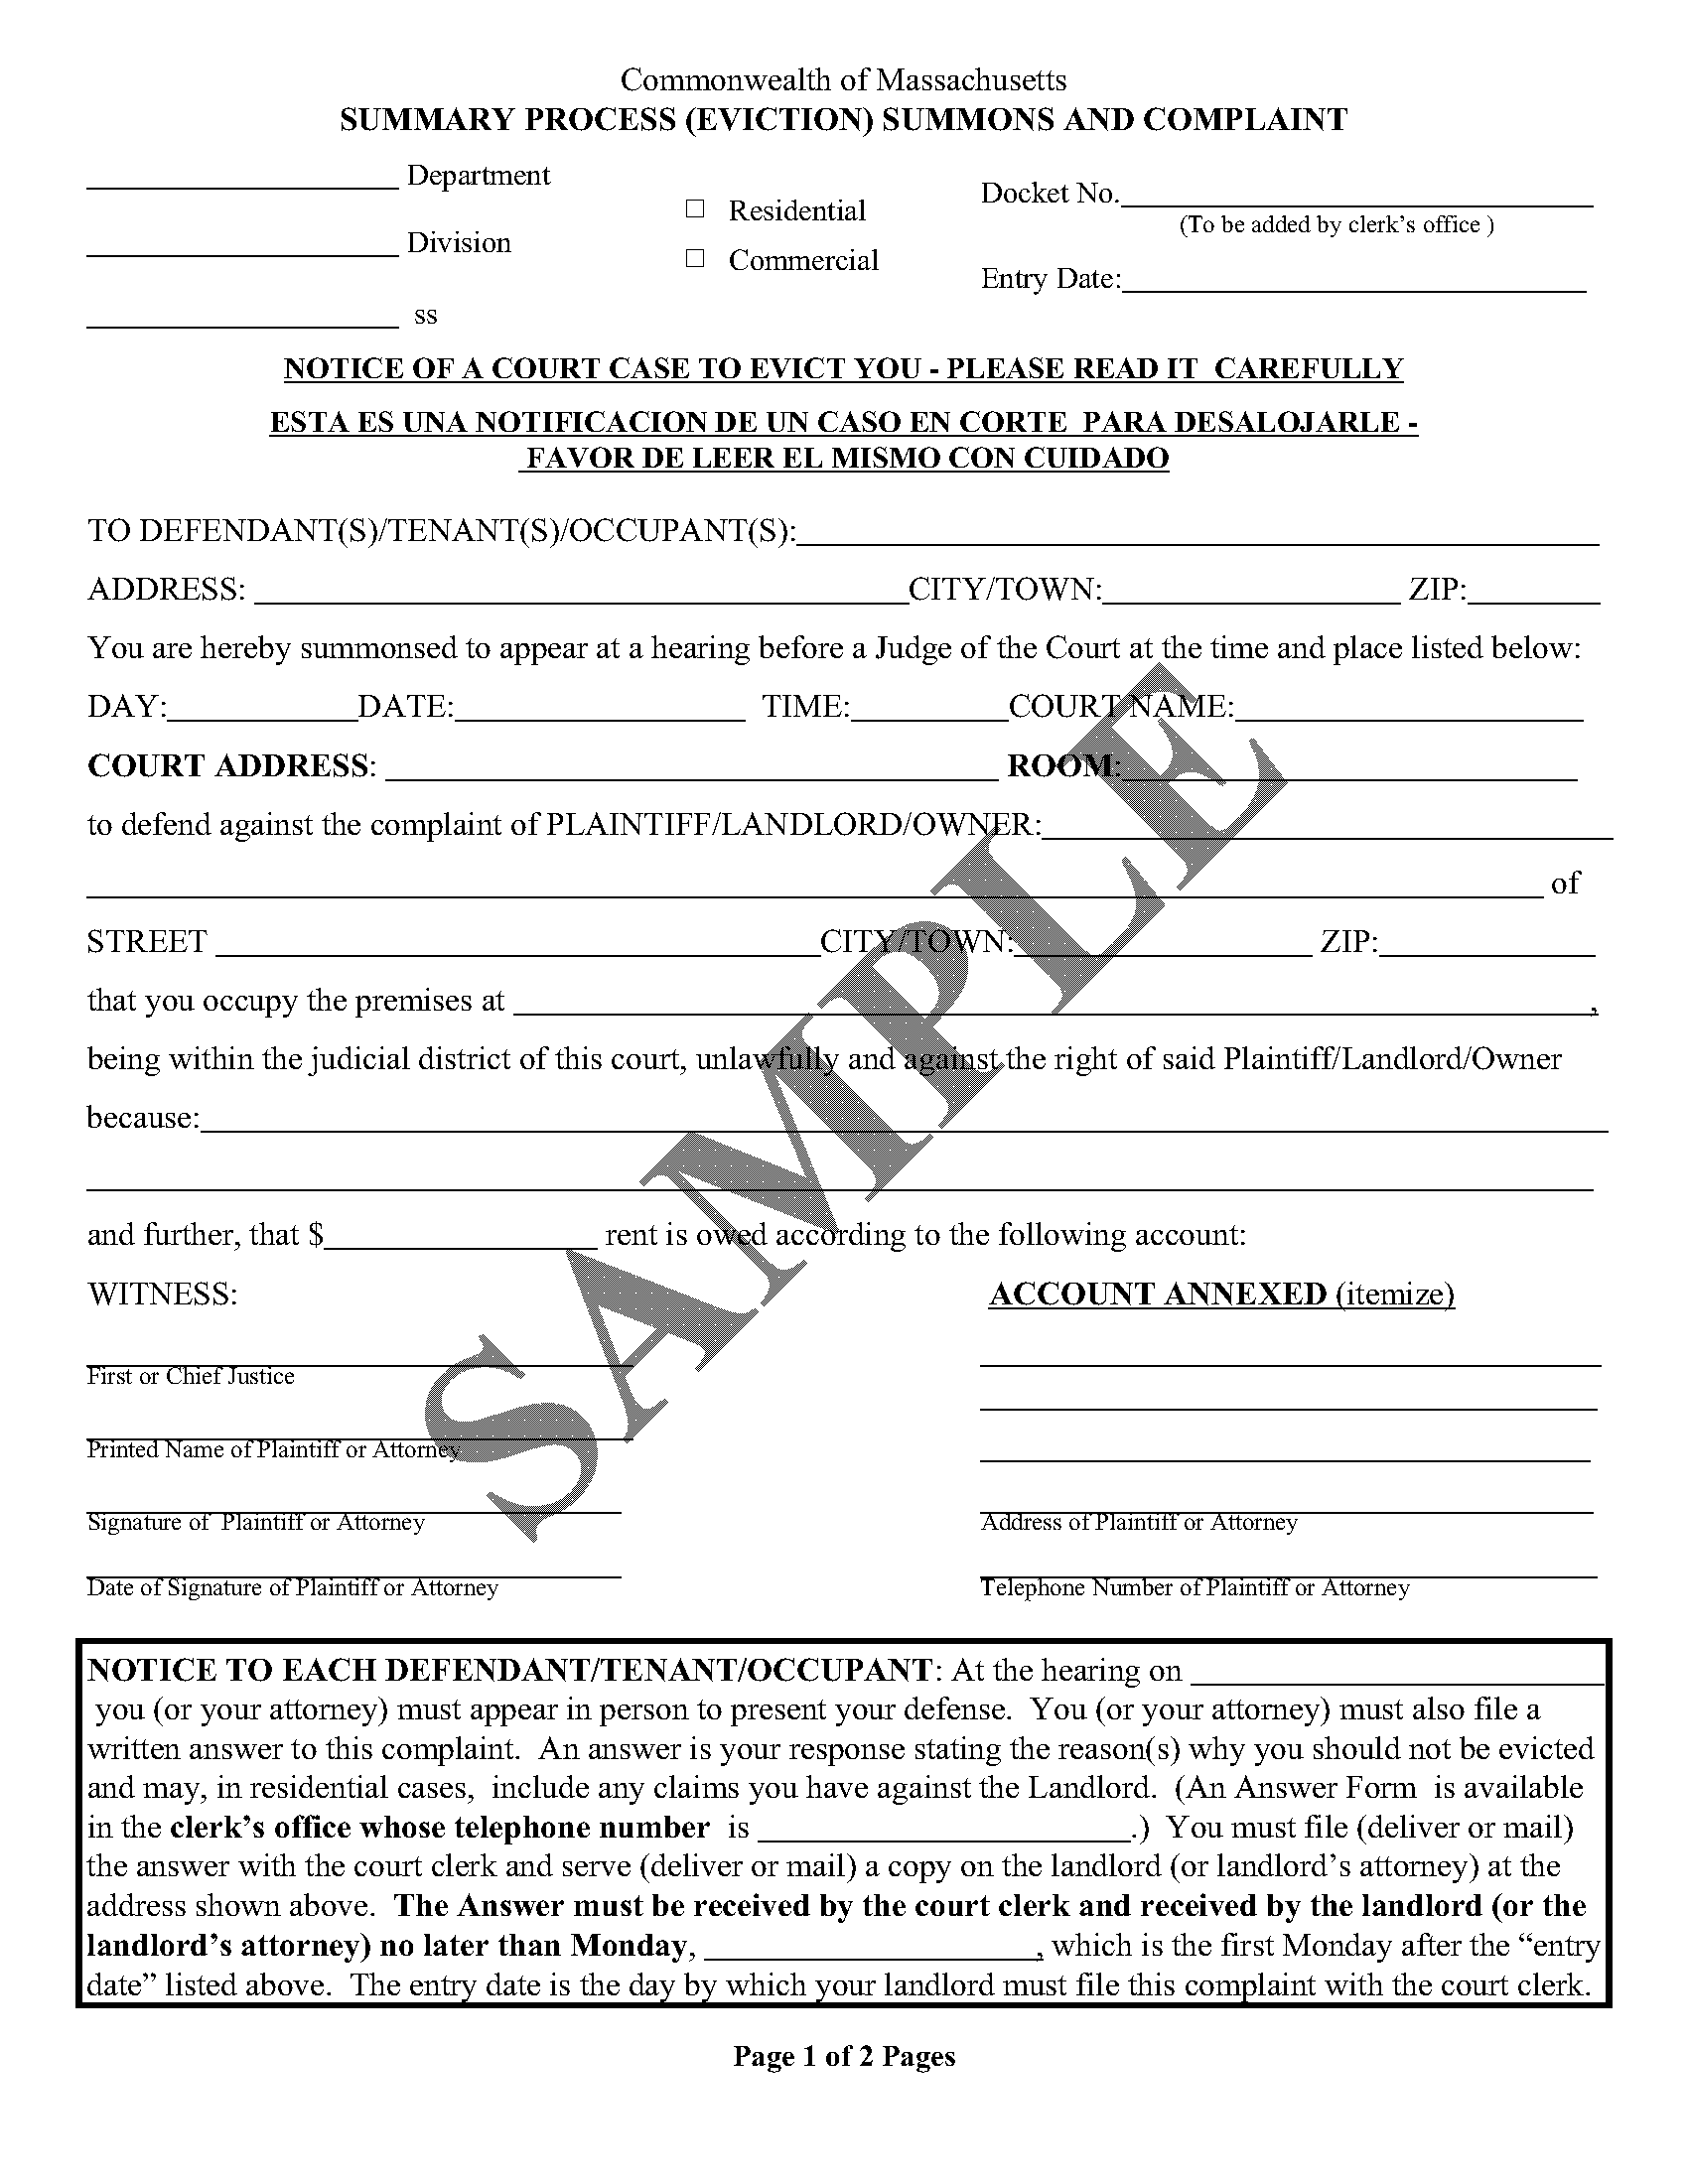 picture of a sample Summons and Complaint